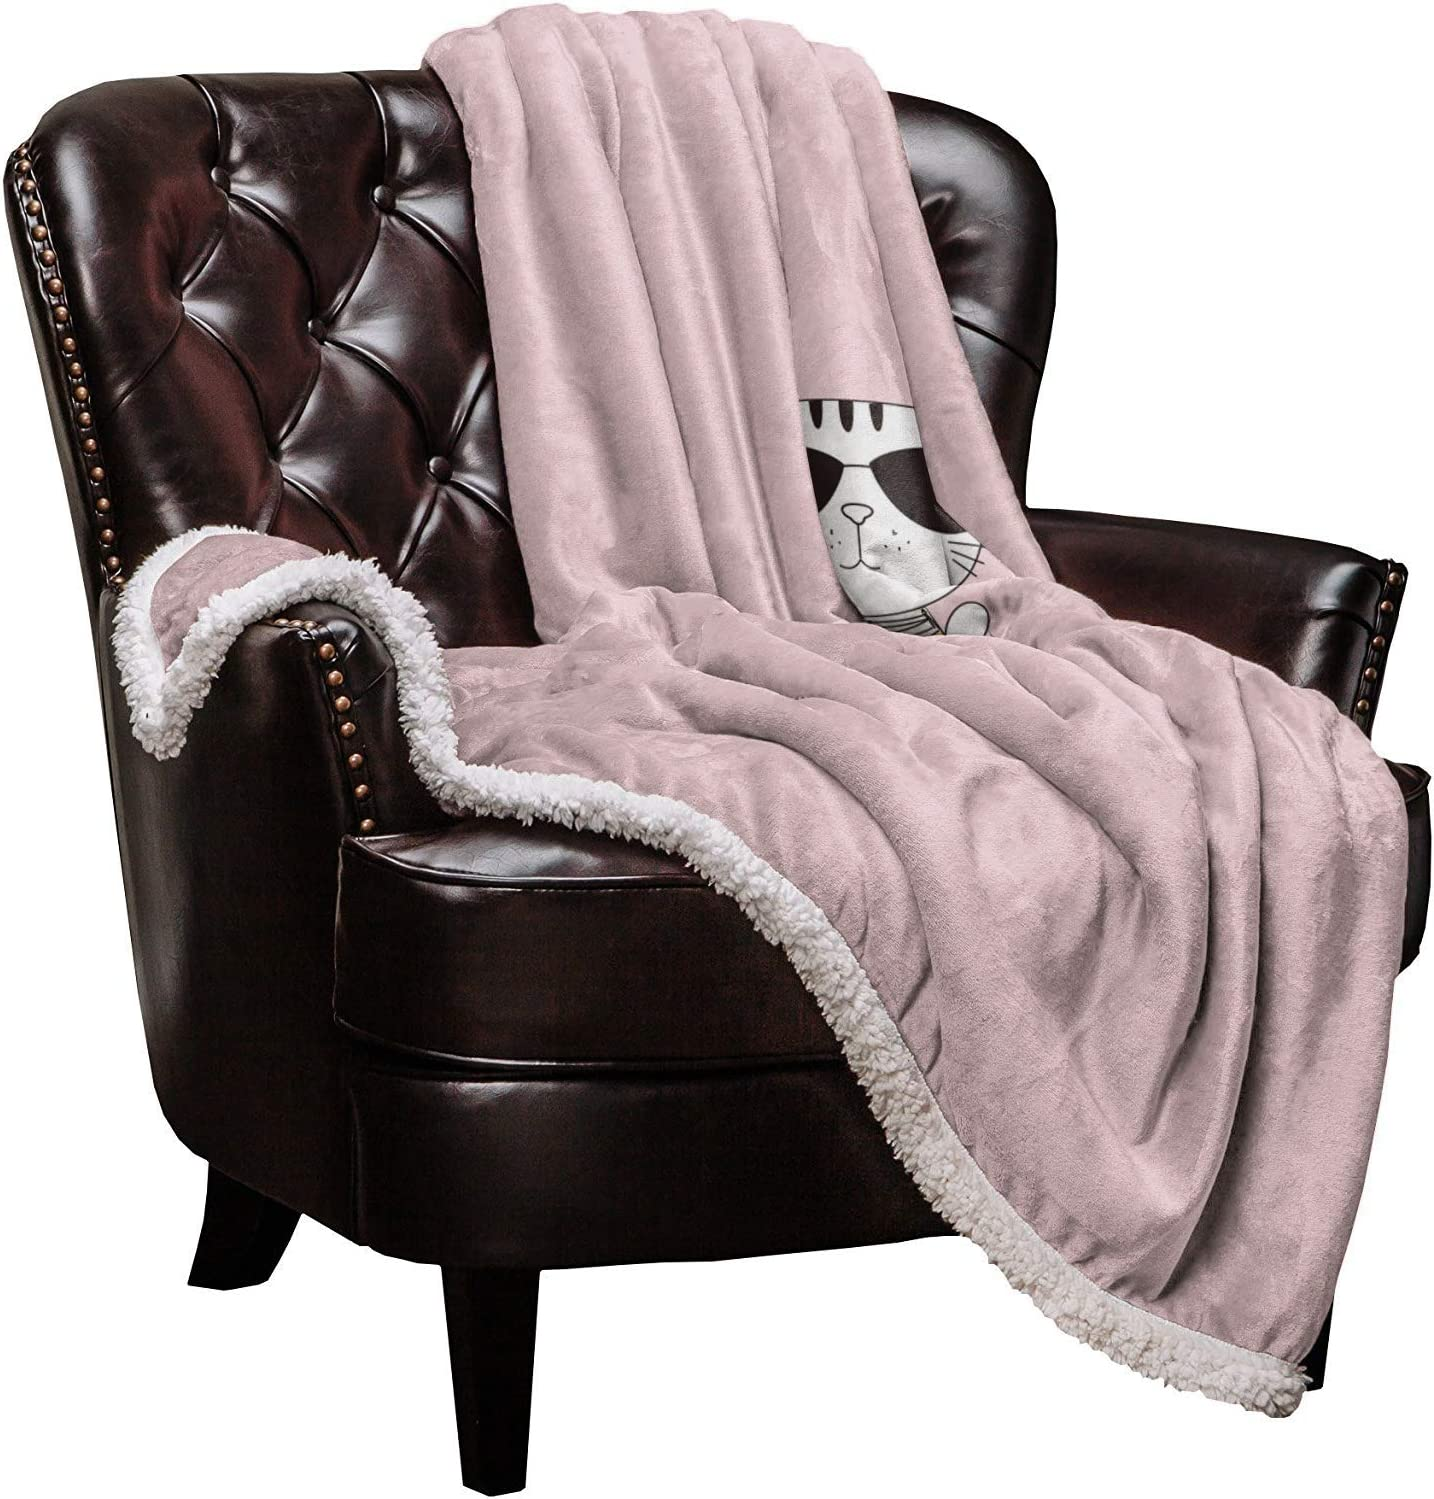 Plush Sherpa Blanket for Adults Throw Soft National products 59